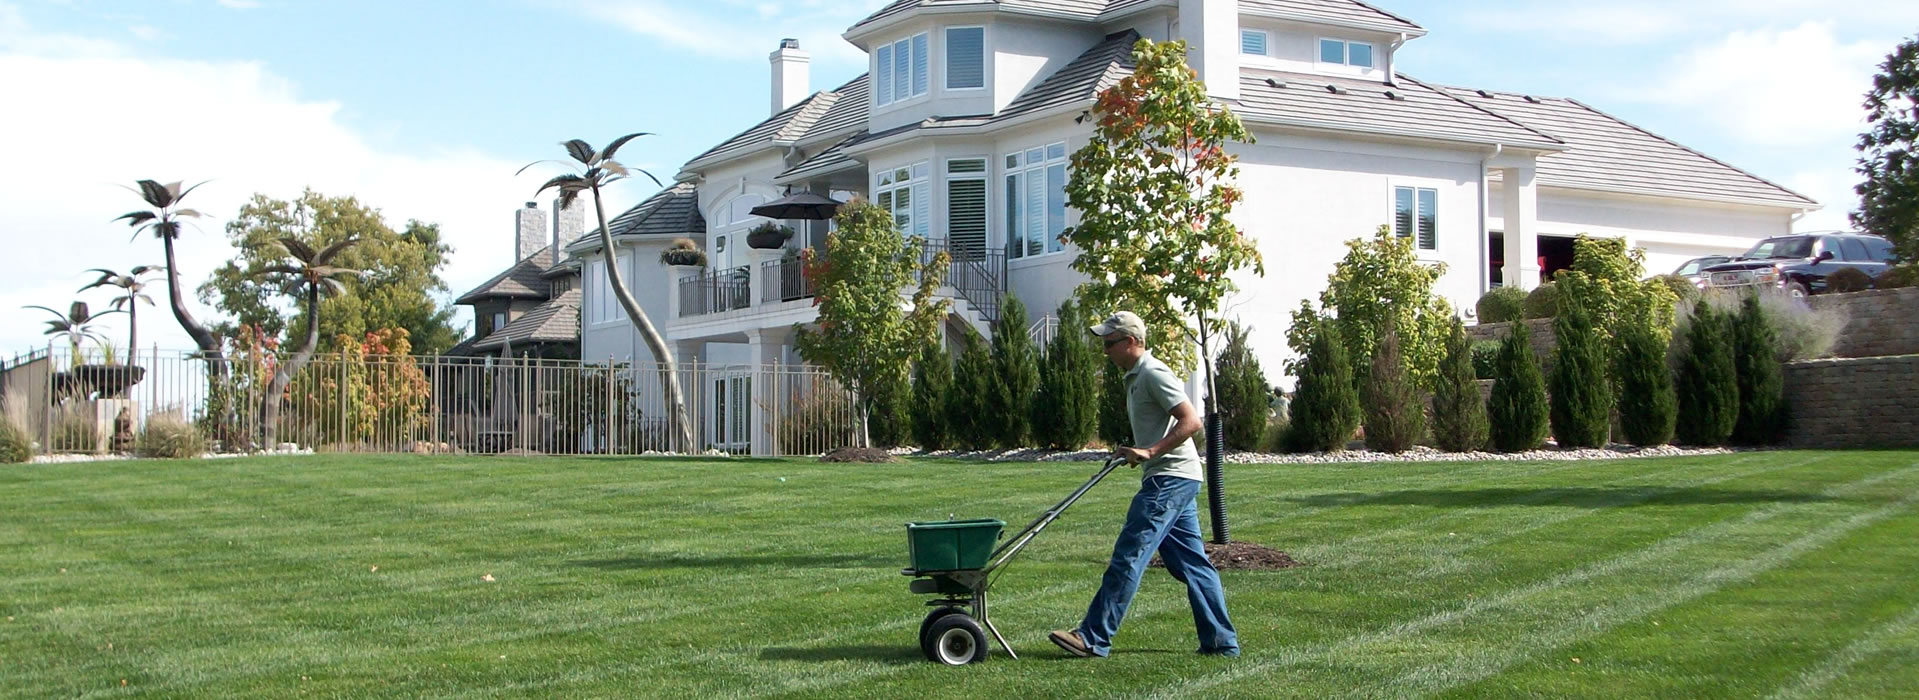 Image result for Lawn fertilizing companies